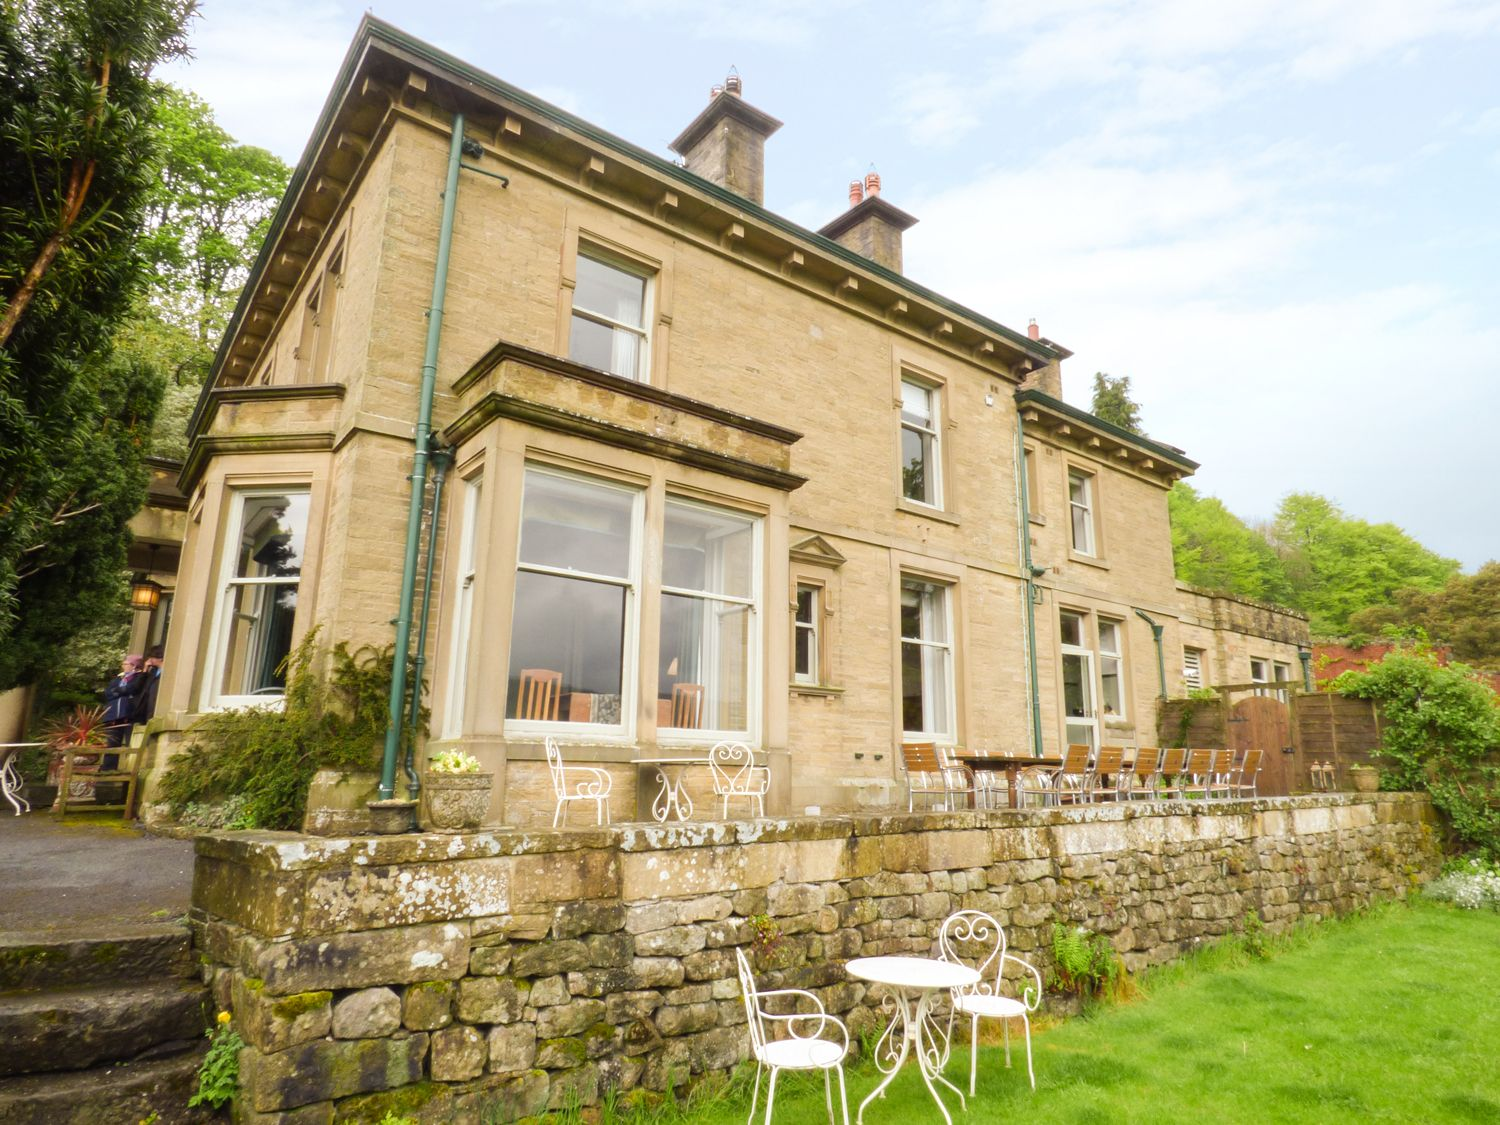 Photo of Woodlands ( Ref 913335 ) Self Catering Accommodation in Giggleswick near Settle North Yorkshire Dales area sleeps 19 people